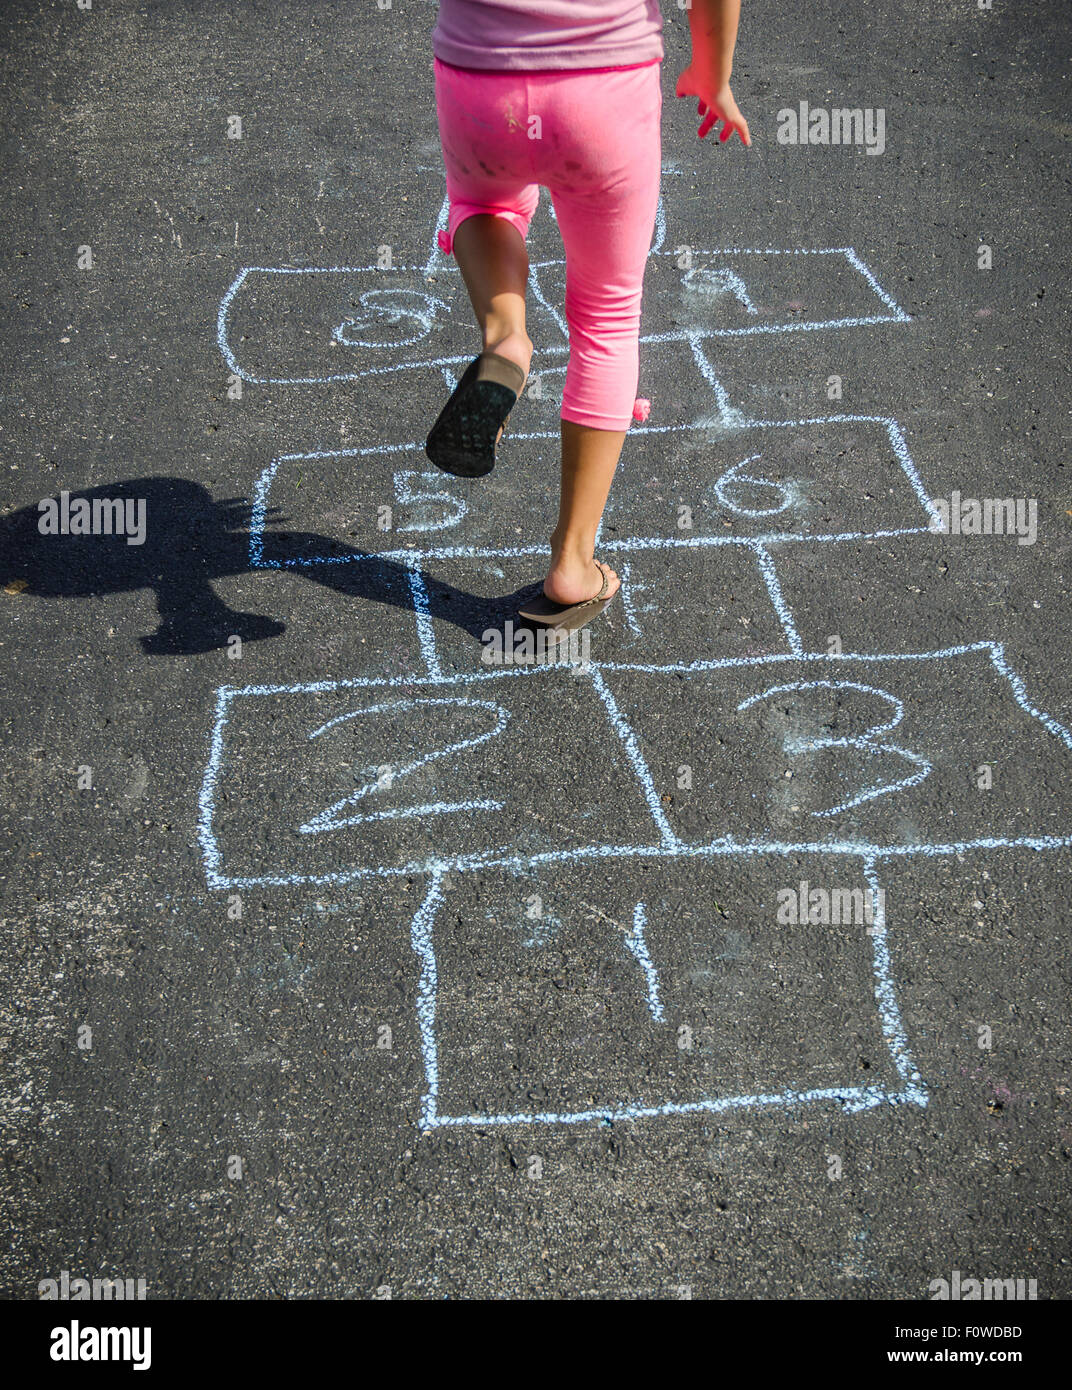 Young Girl Hopping While Playing a Game Outdoors on a Sunny Warm Day Wearing Pink Pants and Sandals - Stock Image